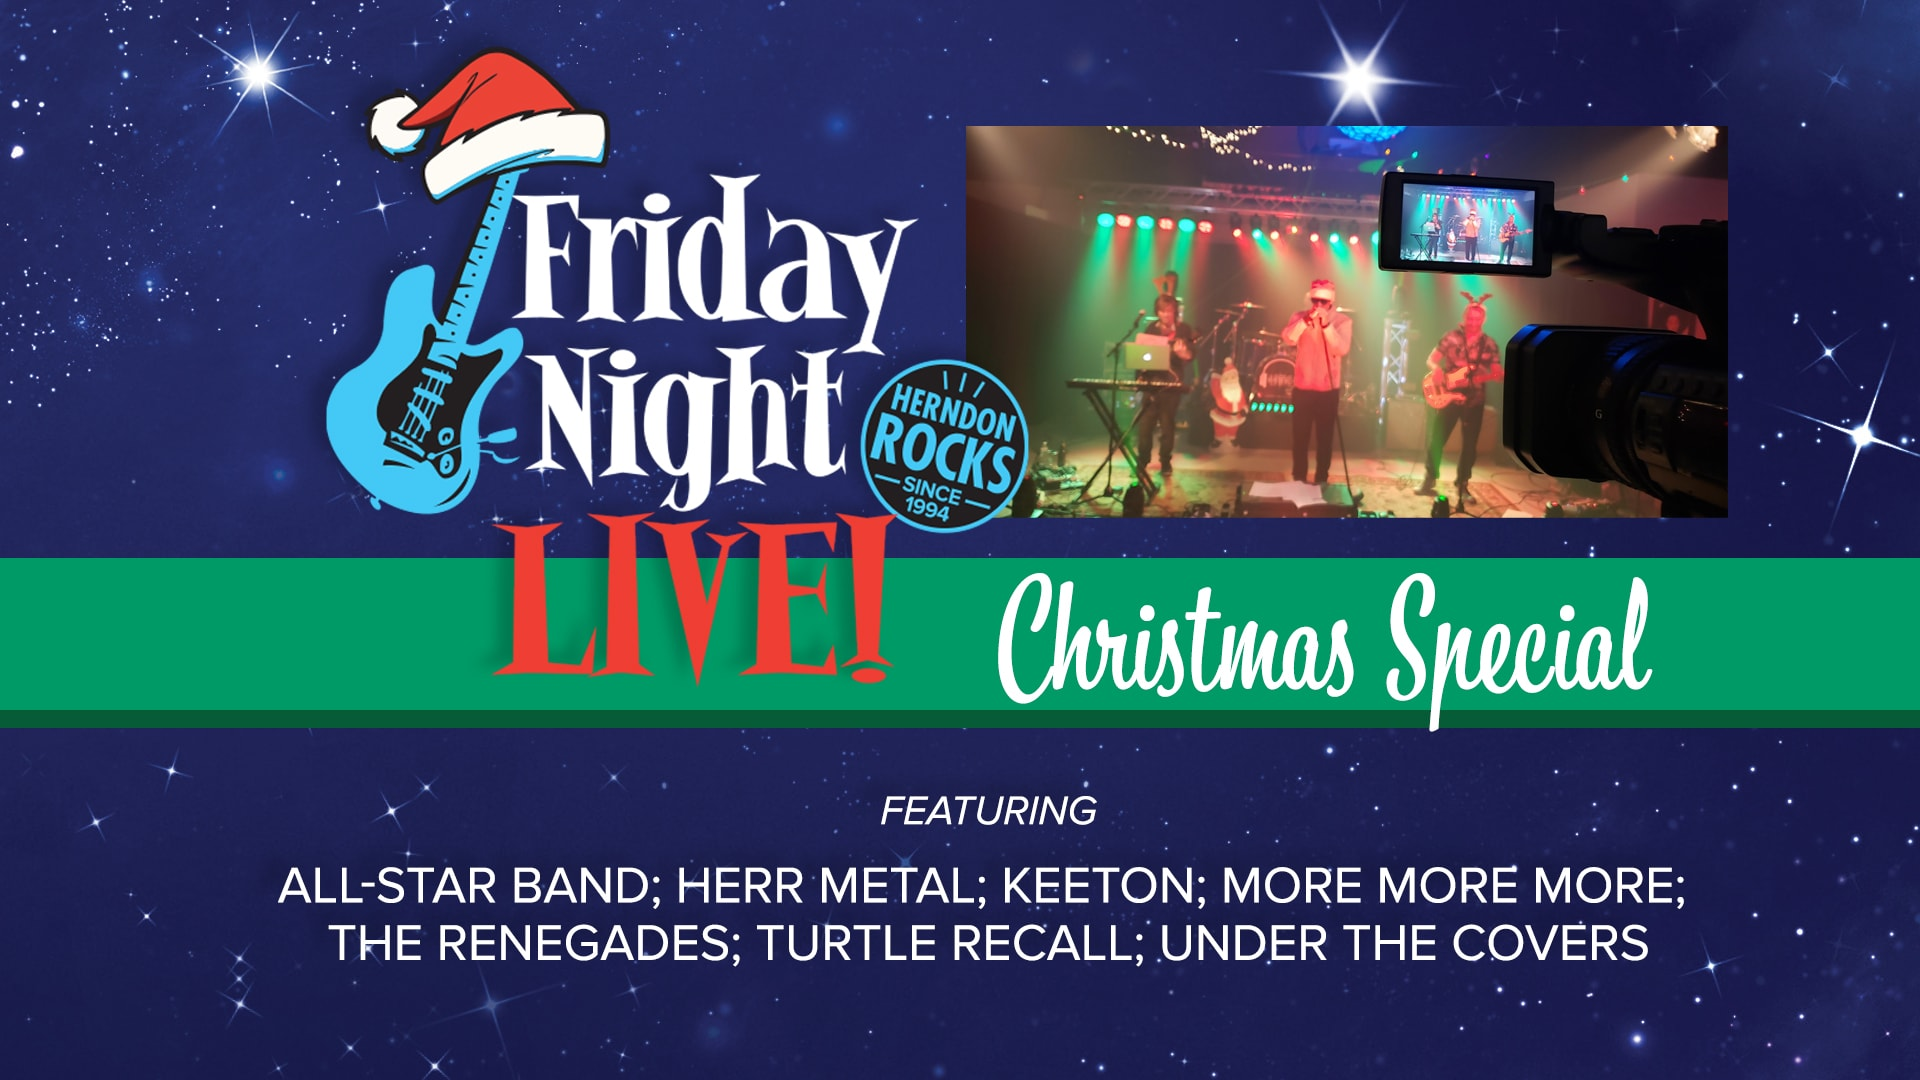 Friday Night Live! Christmas Special